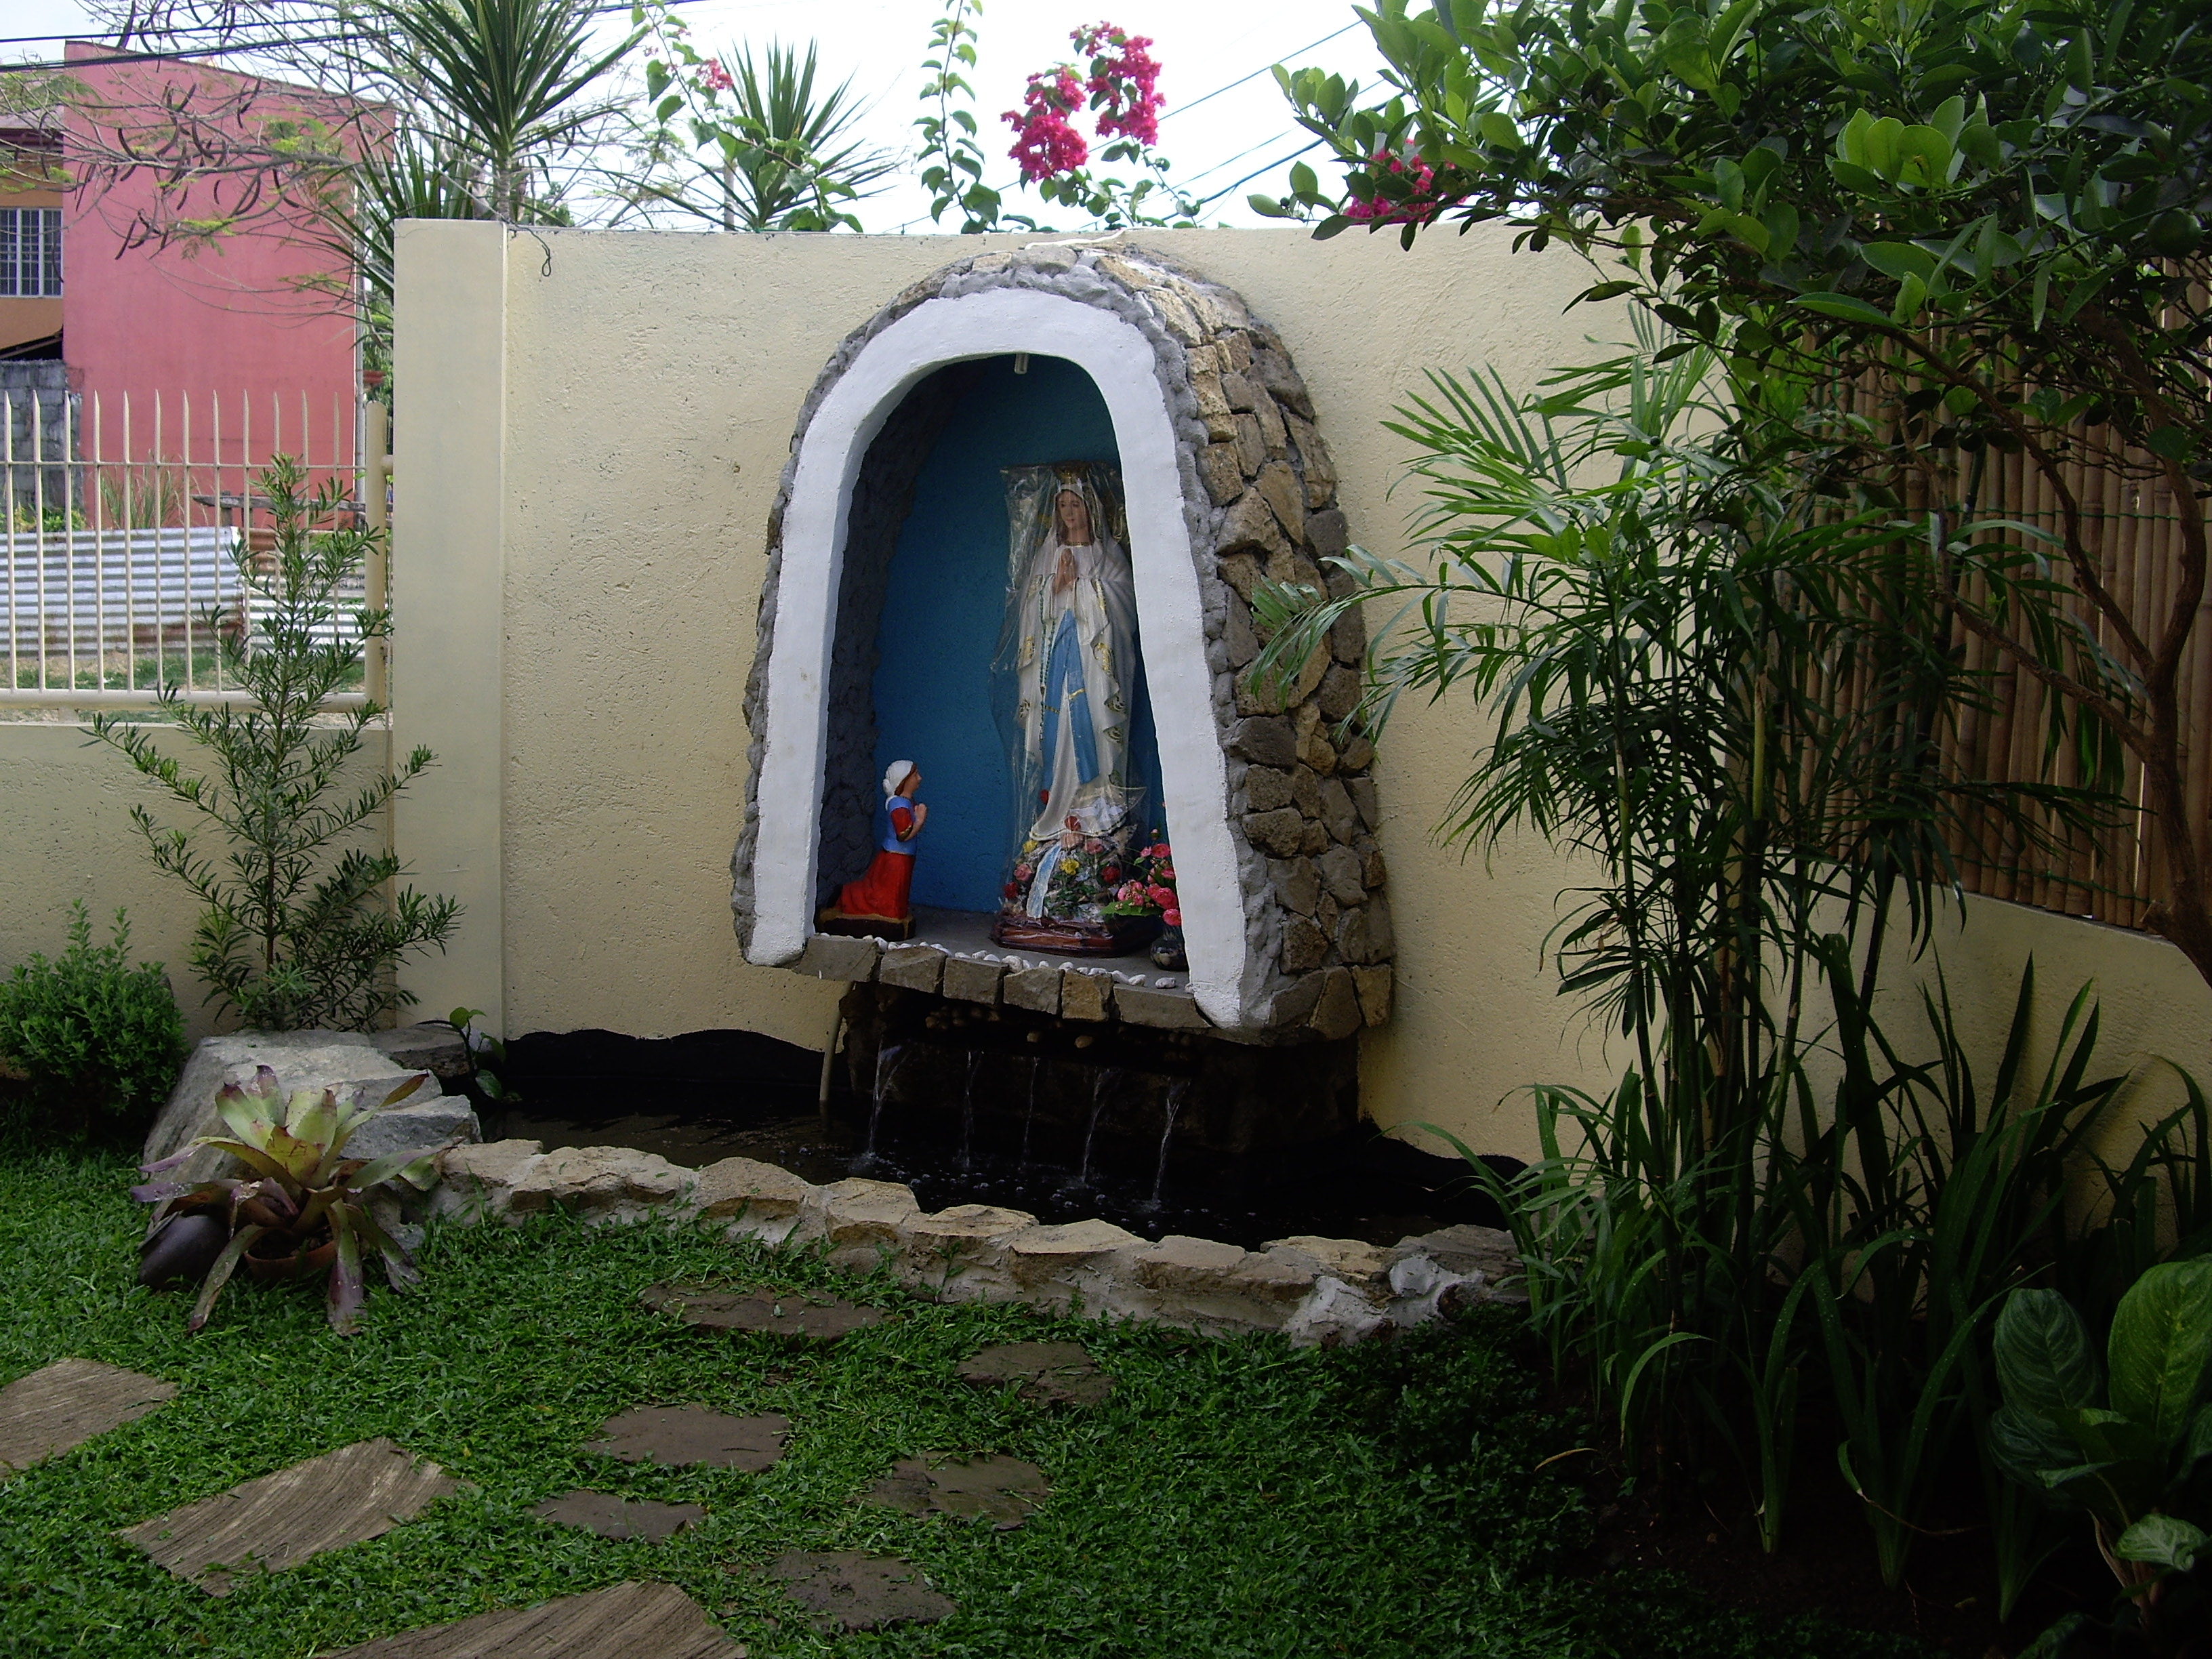 Awesome picture of grotto designs of mother mary for Garden grotto designs